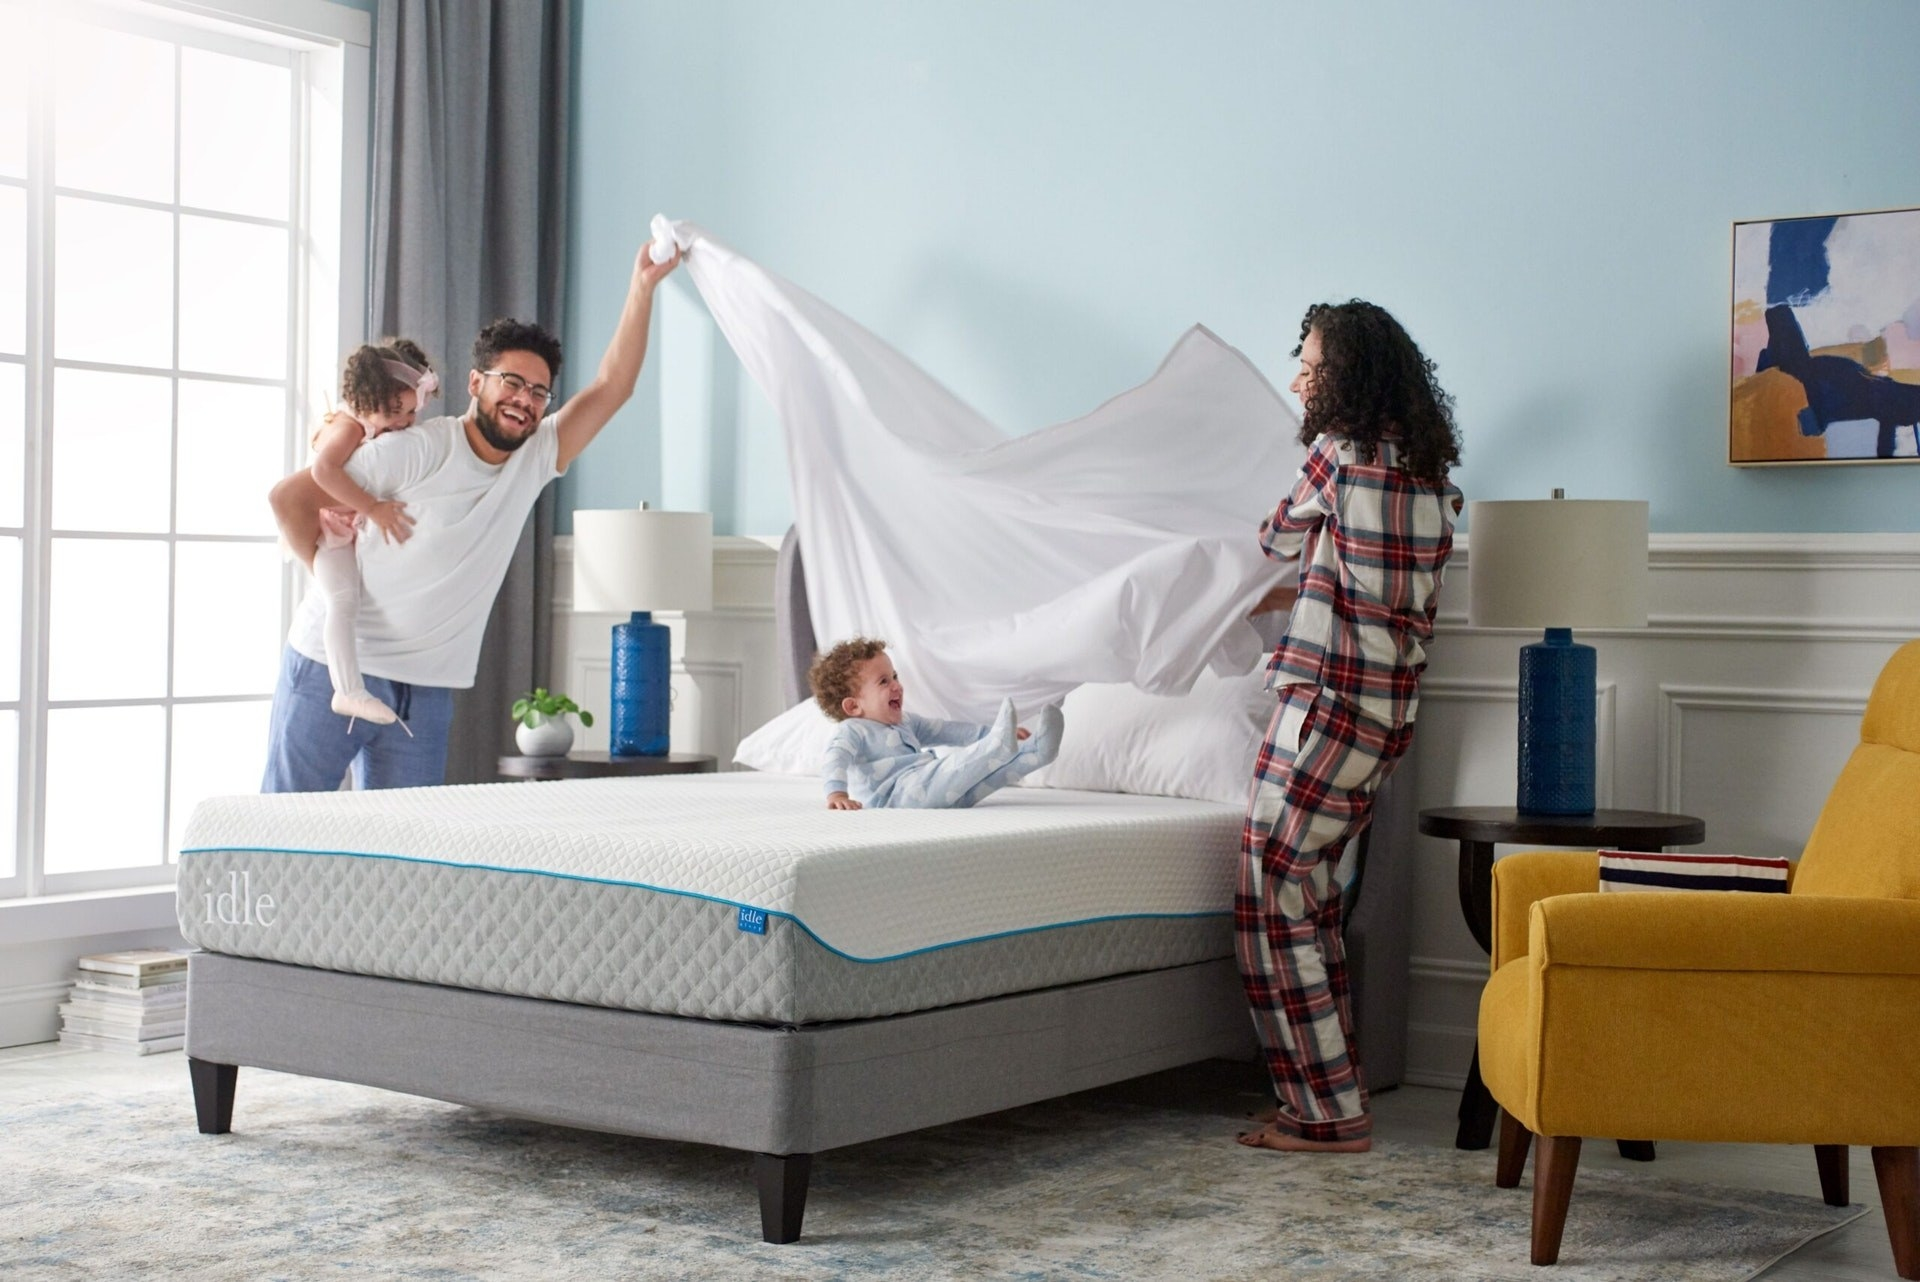 Family making a a bed with Idle mattress